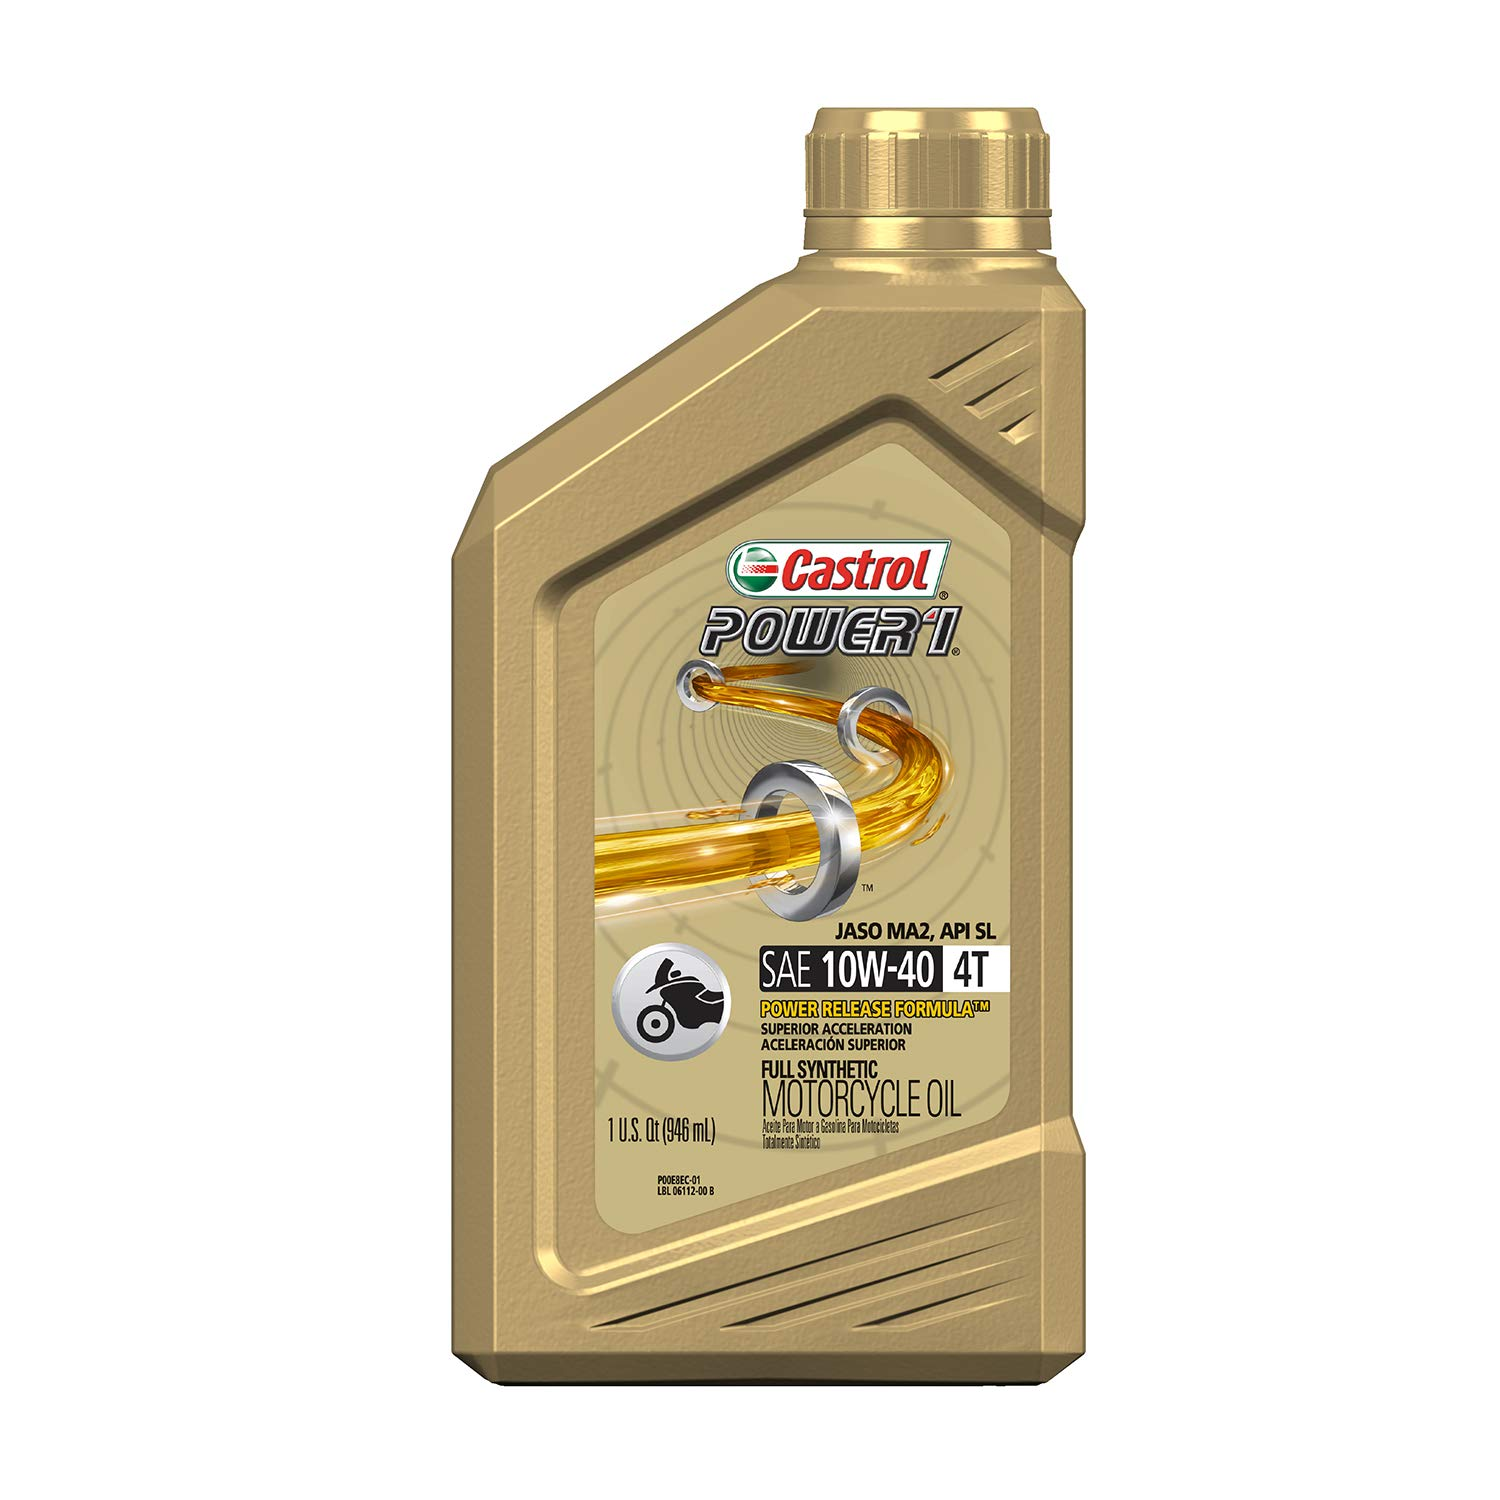 Castrol Power 1 4T 10w-40 Motorcycle 4 Stroke Engine Oil ...